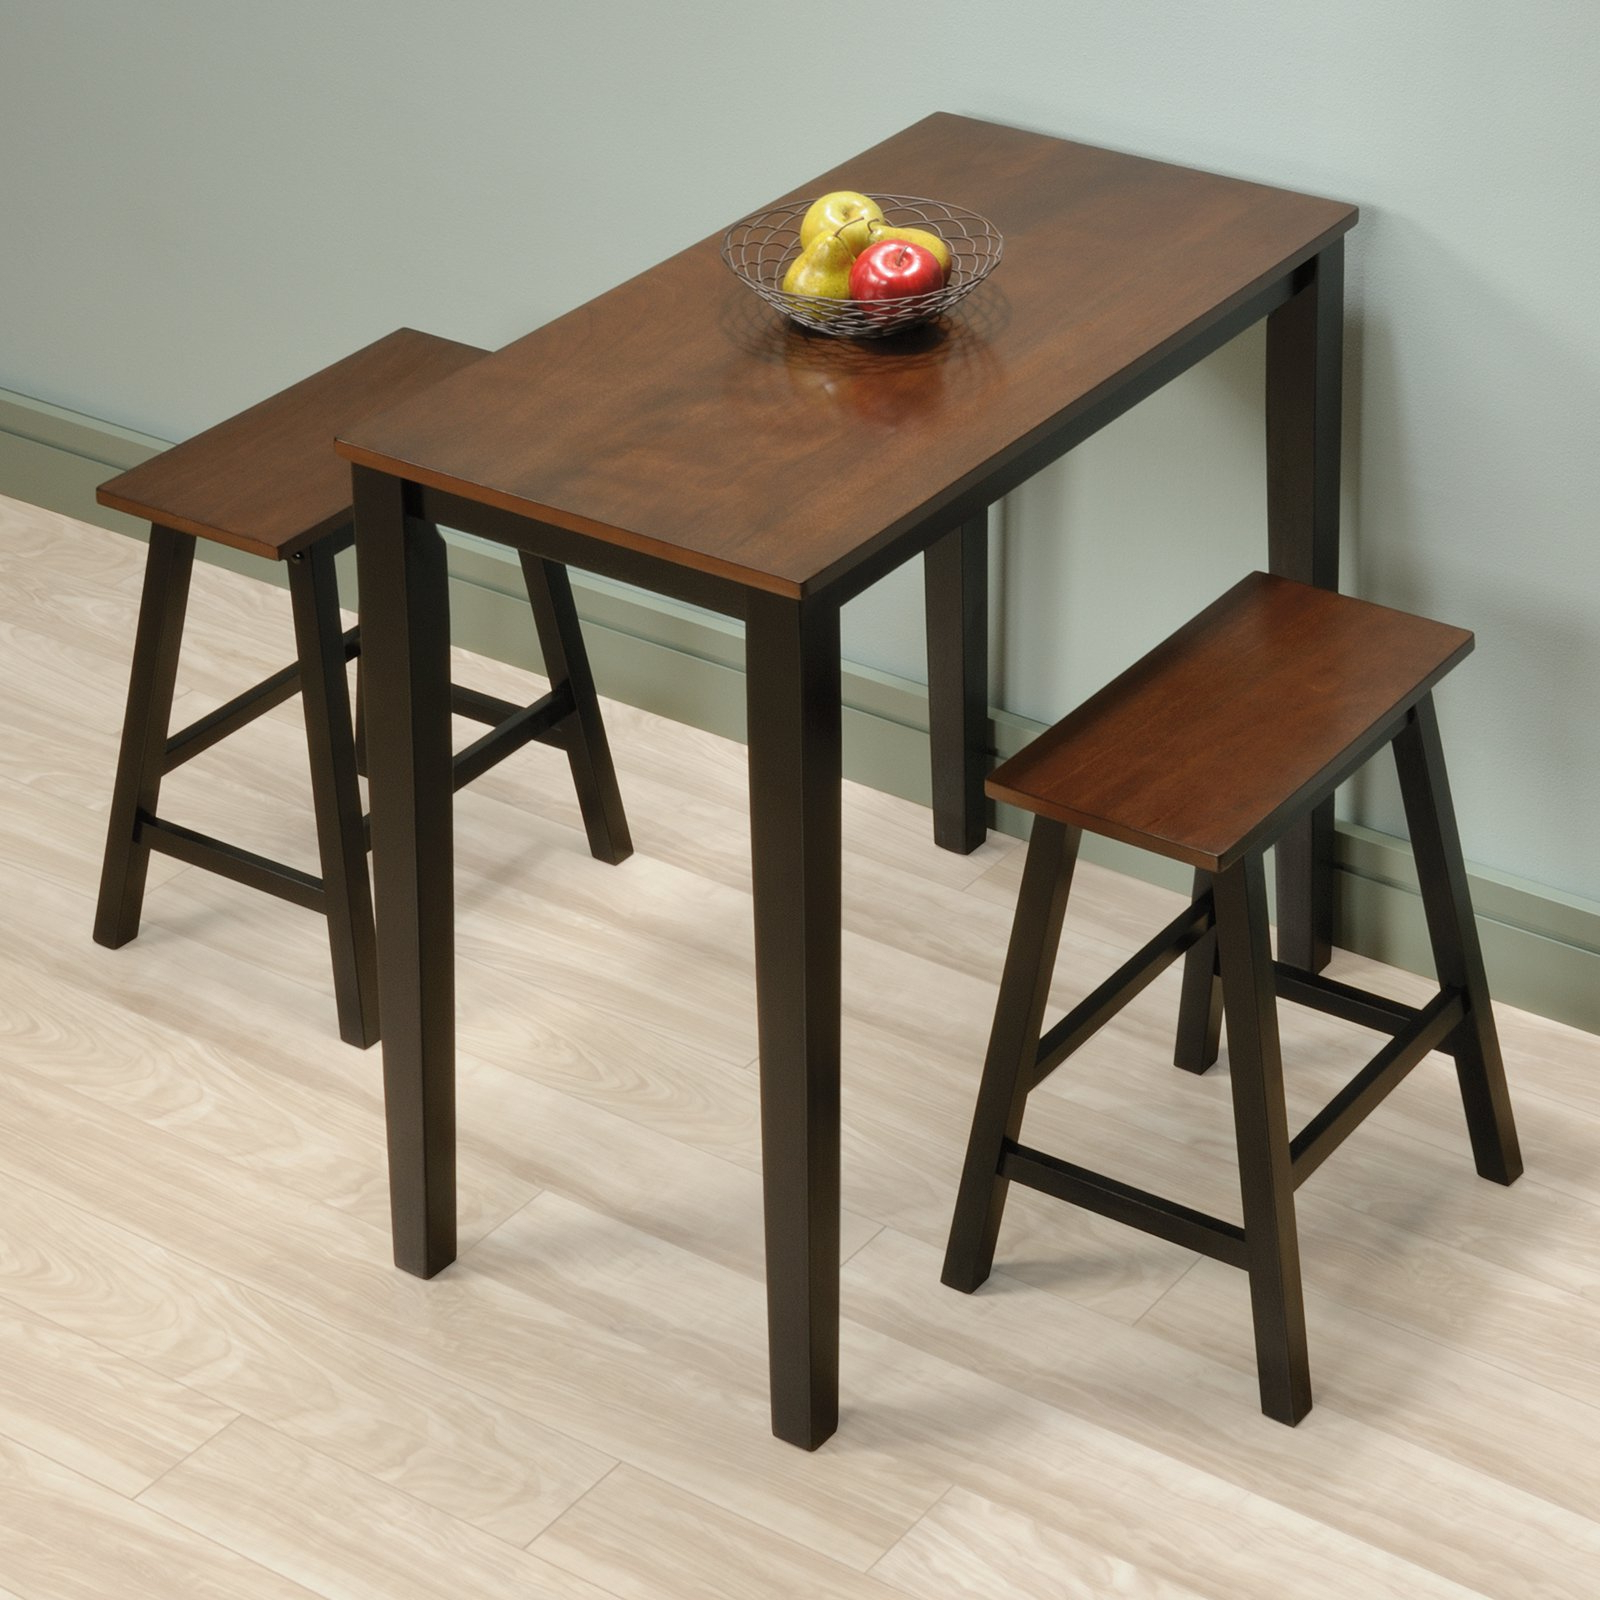 Recent Sauder Beginnings 3 Piece Counter Height Dining Set, Cherry Finish Regarding 3 Piece Dining Sets (View 16 of 20)